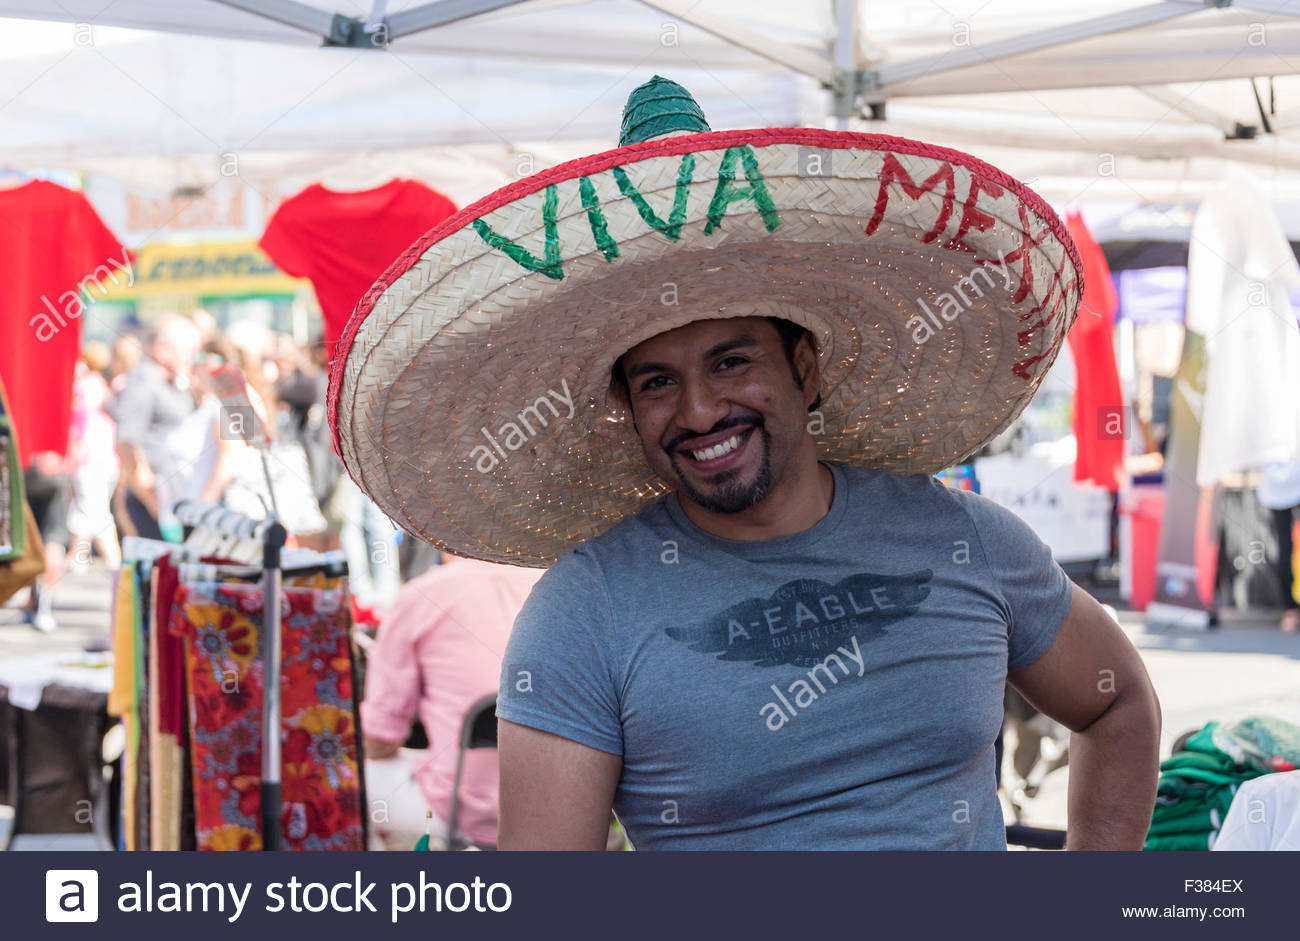 21f8852e4a5 Man wearing a Mexican Sombrero Hat at MexFest 2015 in Toronto. The hat has  the